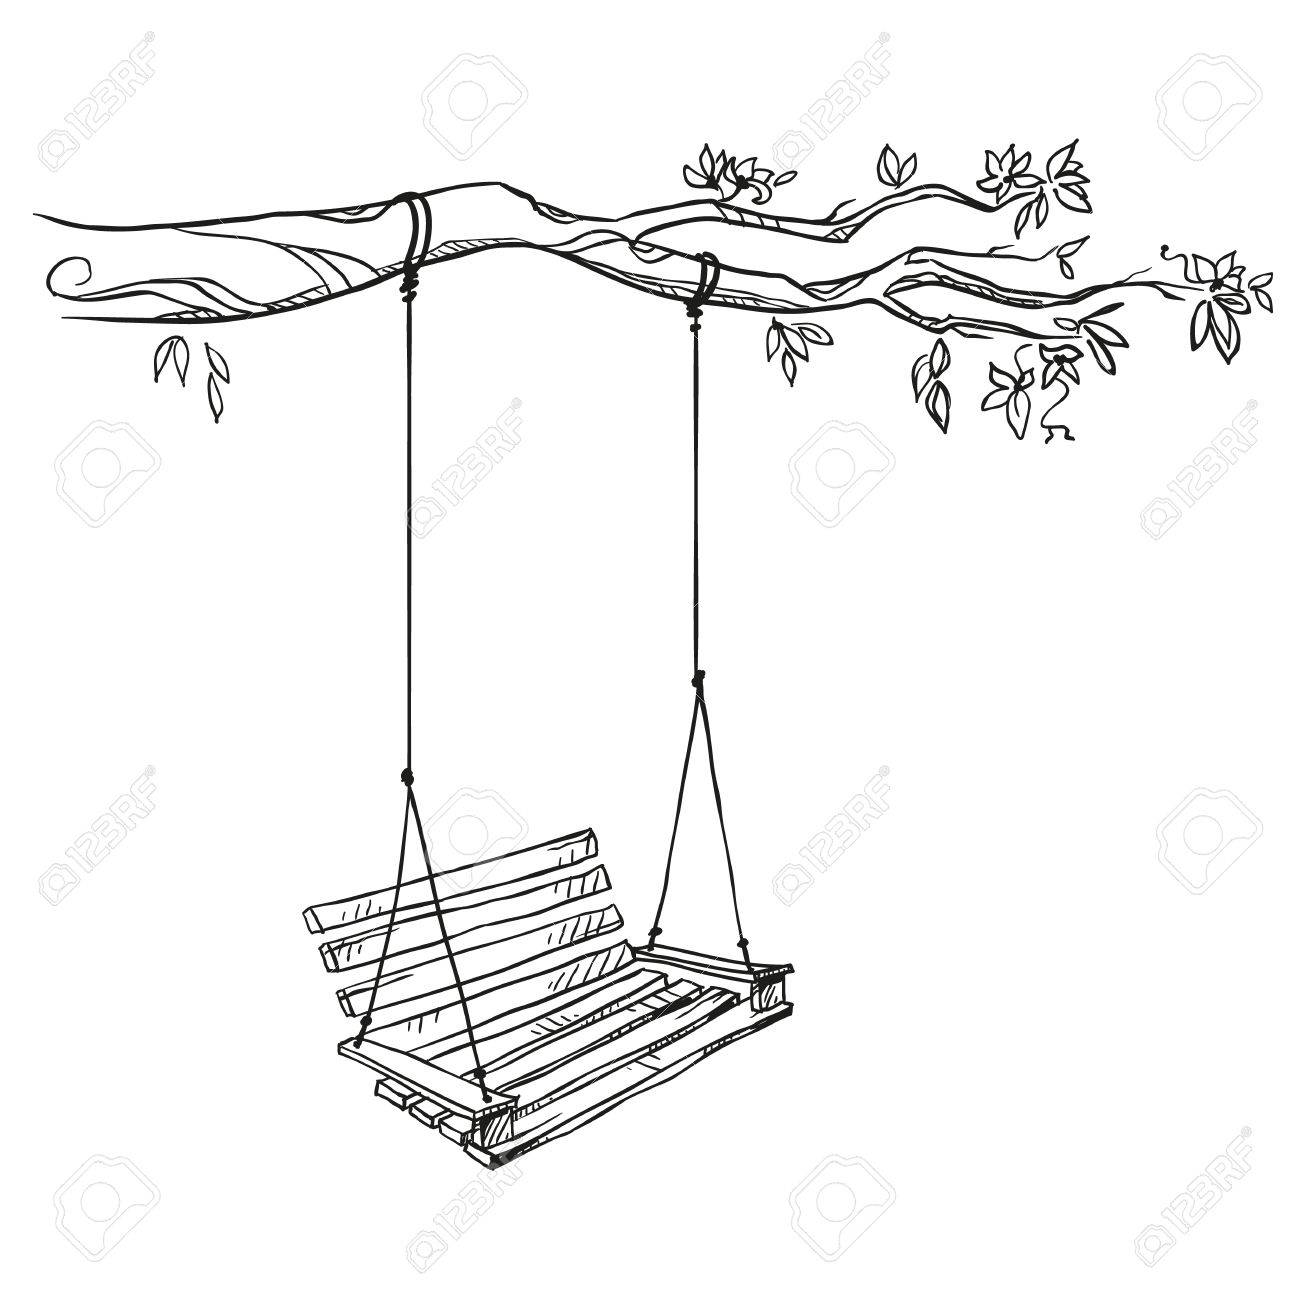 1300x1300 Tree With A Swing. Vector Illustration. Royalty Free Cliparts